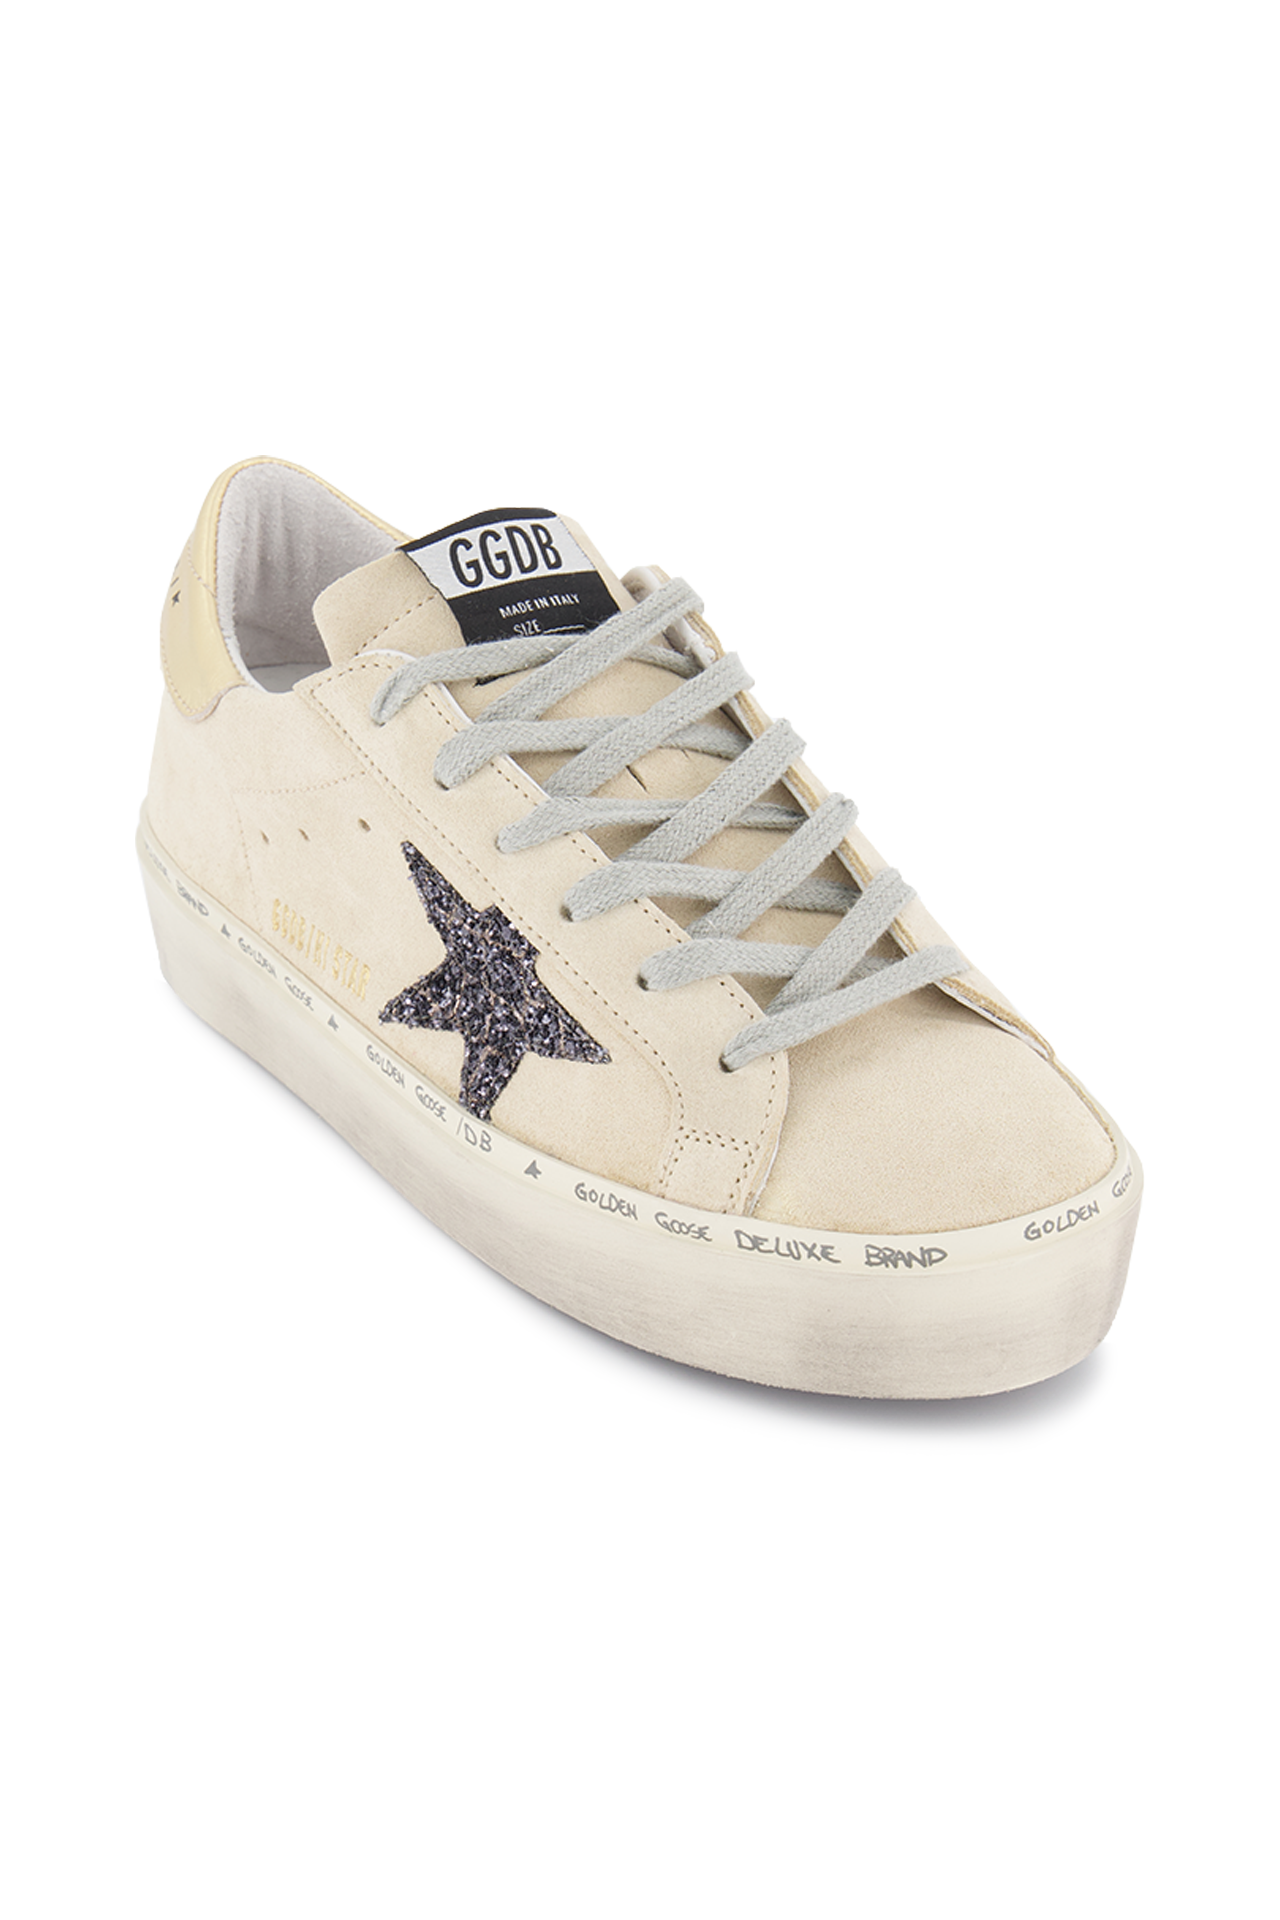 Angle Image of Golden Goose Women's Hi Star Sneaker Pearl Suede